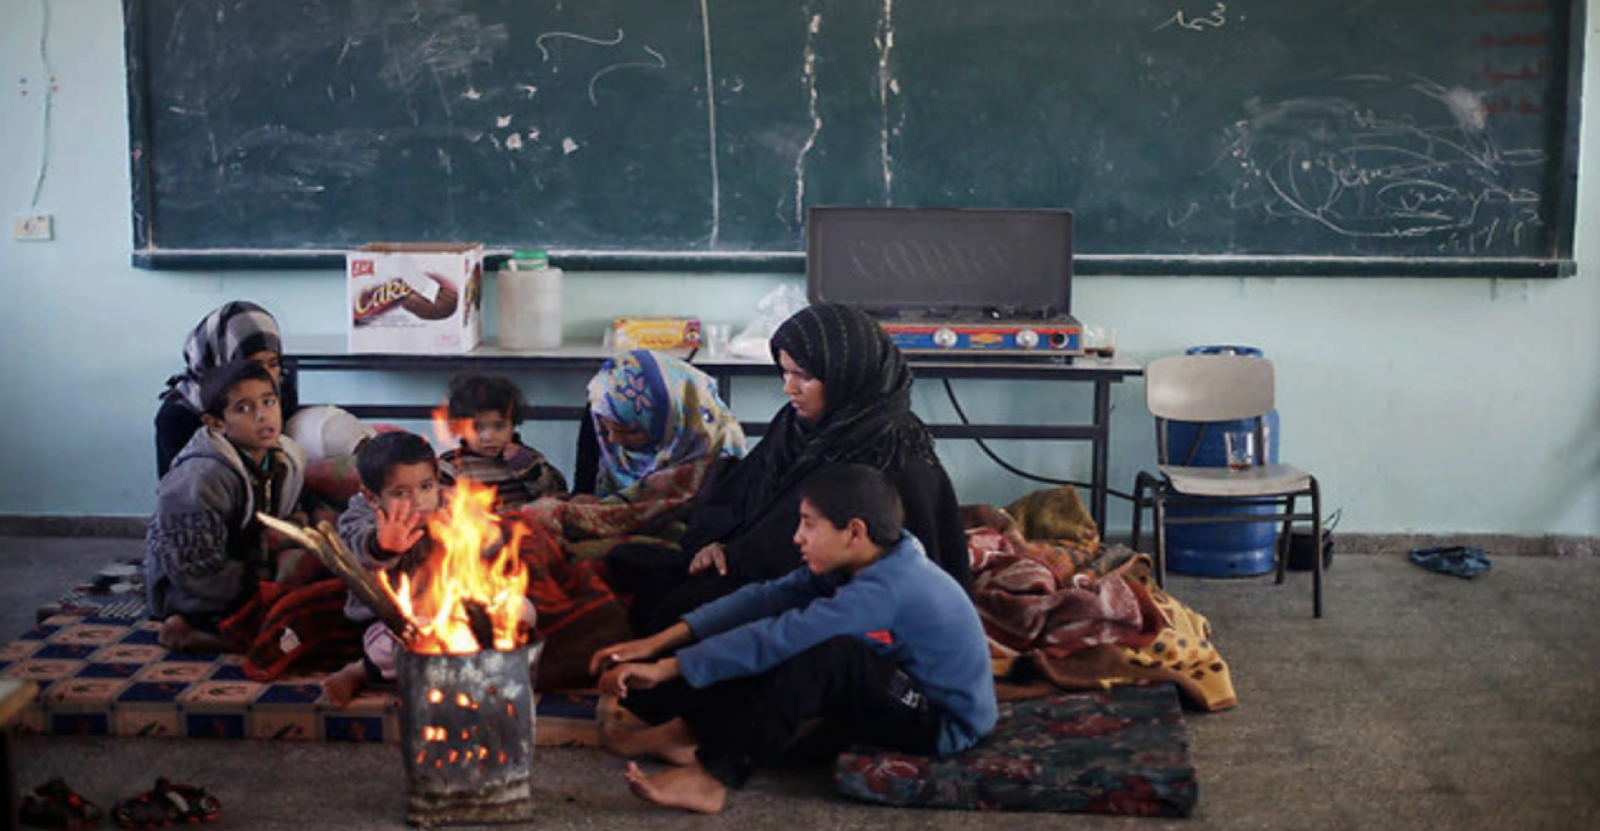 [Photo: Residents of Gaza without electricity during winter. Source:  Reuters ]